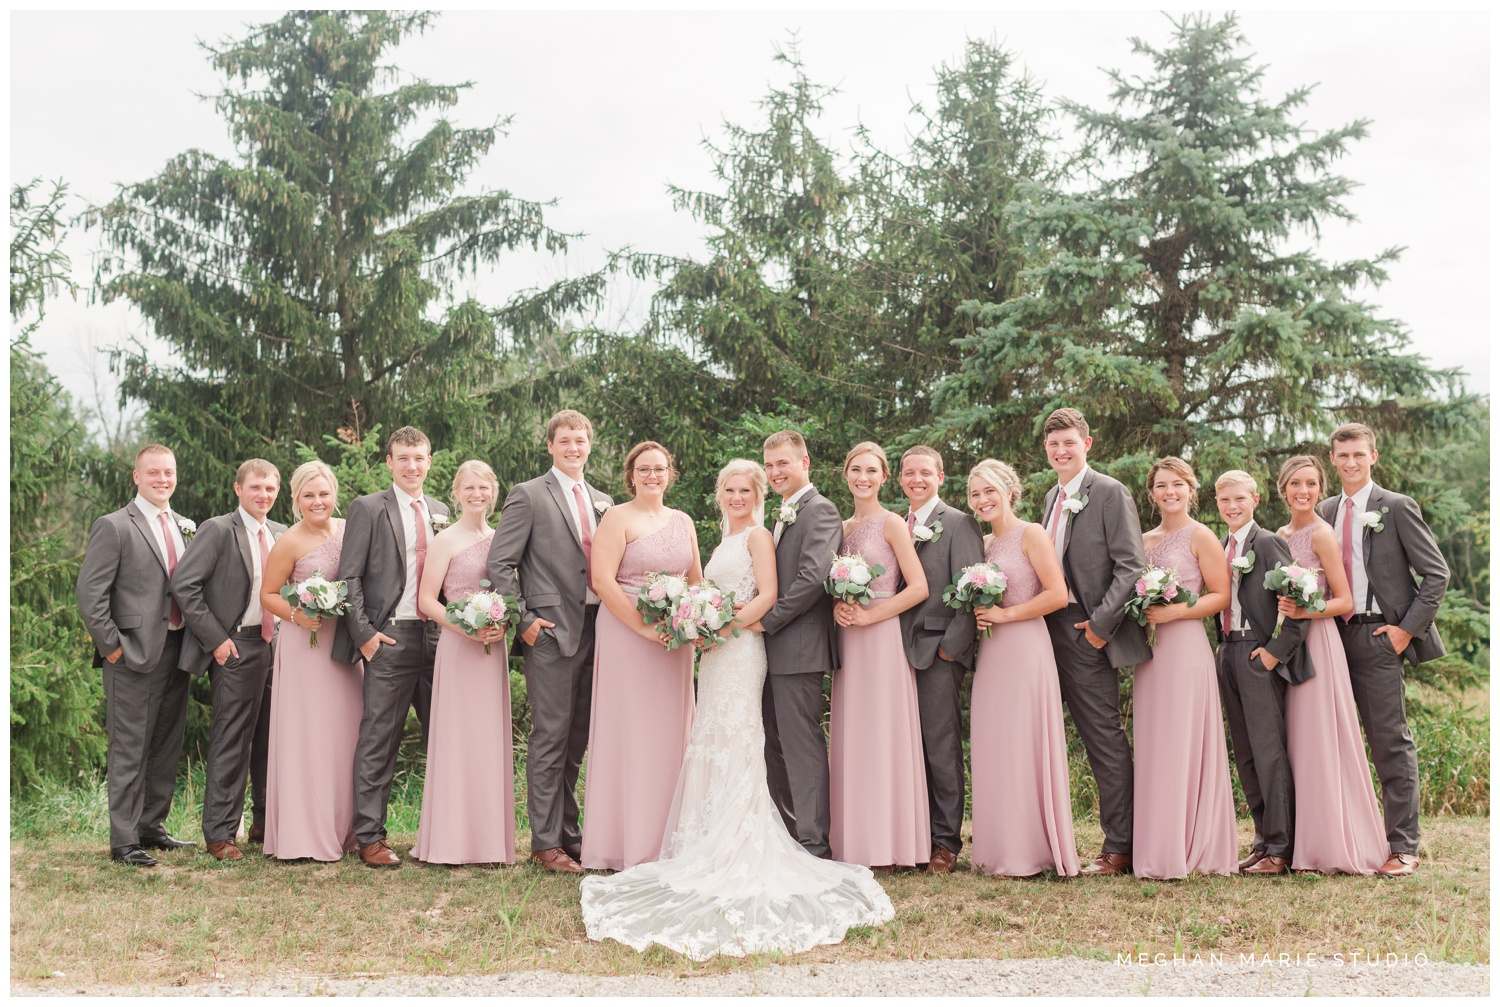 meghan marie studio wedding photographer ohio troy dayton columbus small town rustic rural farm cows vintage mauves dusty rose pinks whites ivorys grays f1 sound paper lanterns pearls_0637.jpg